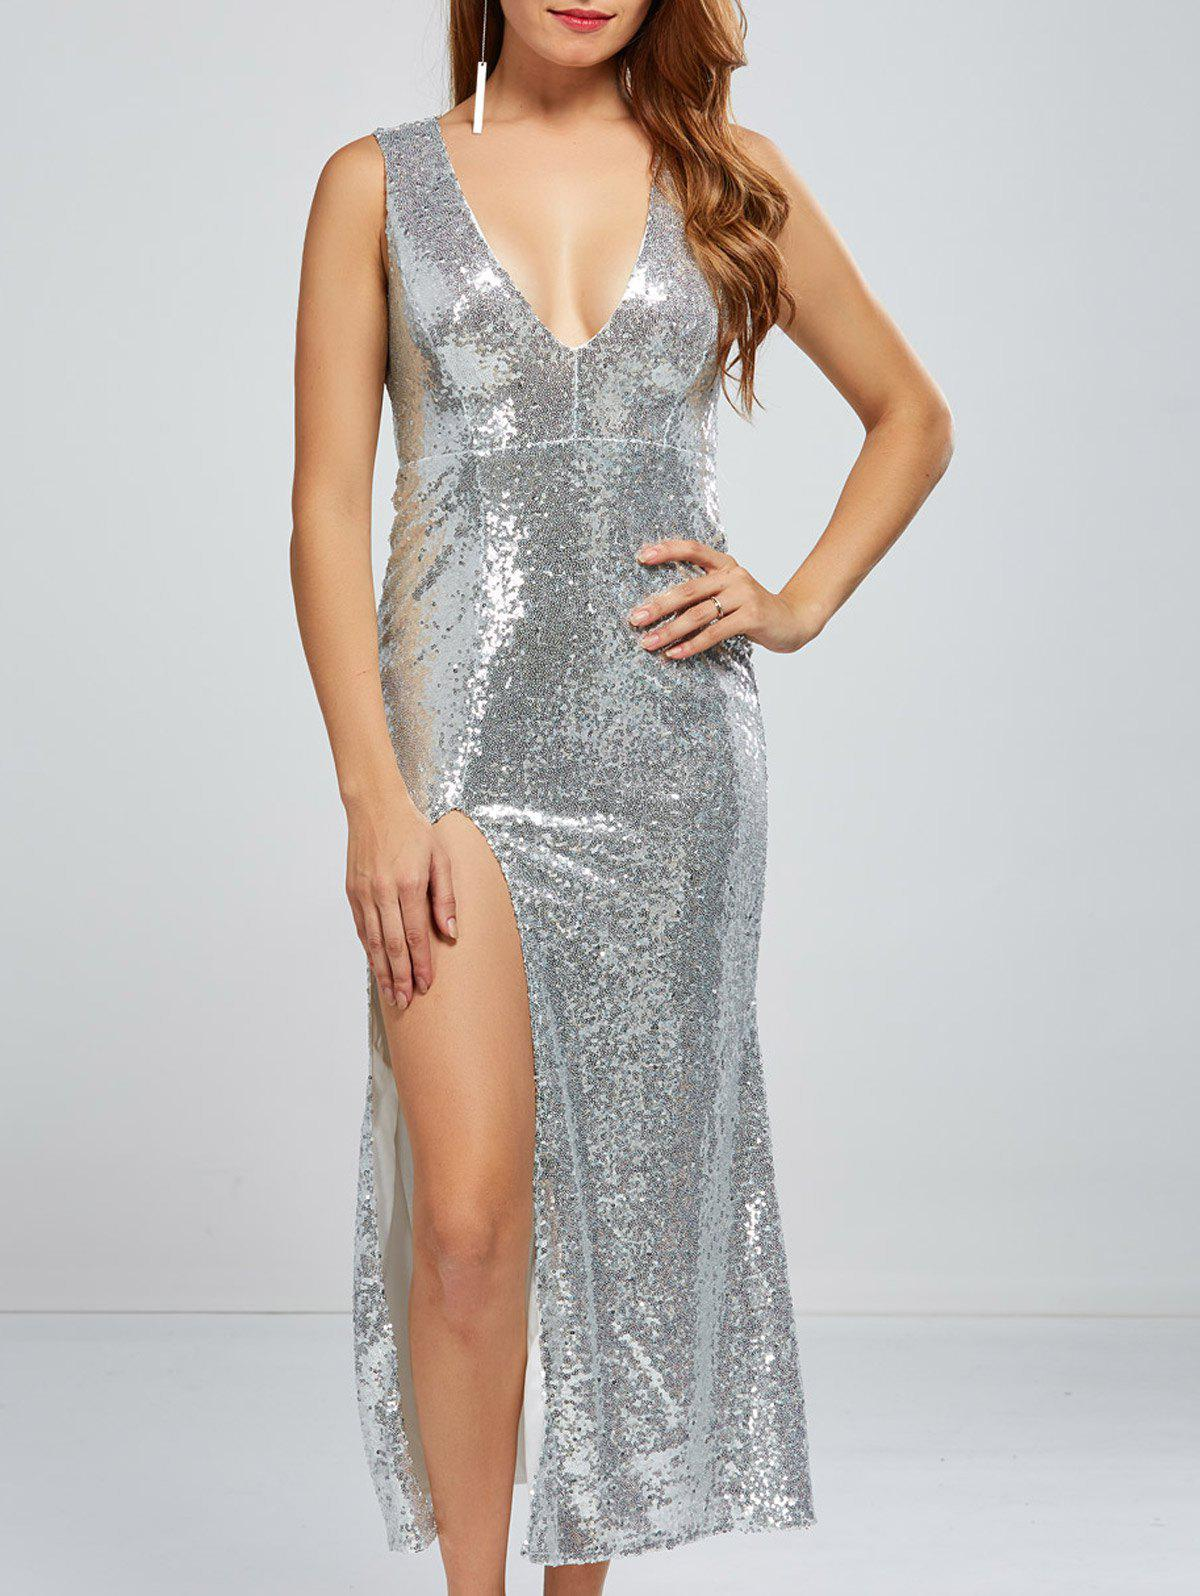 Sequined Low Cut High Slit Dress - SILVER S